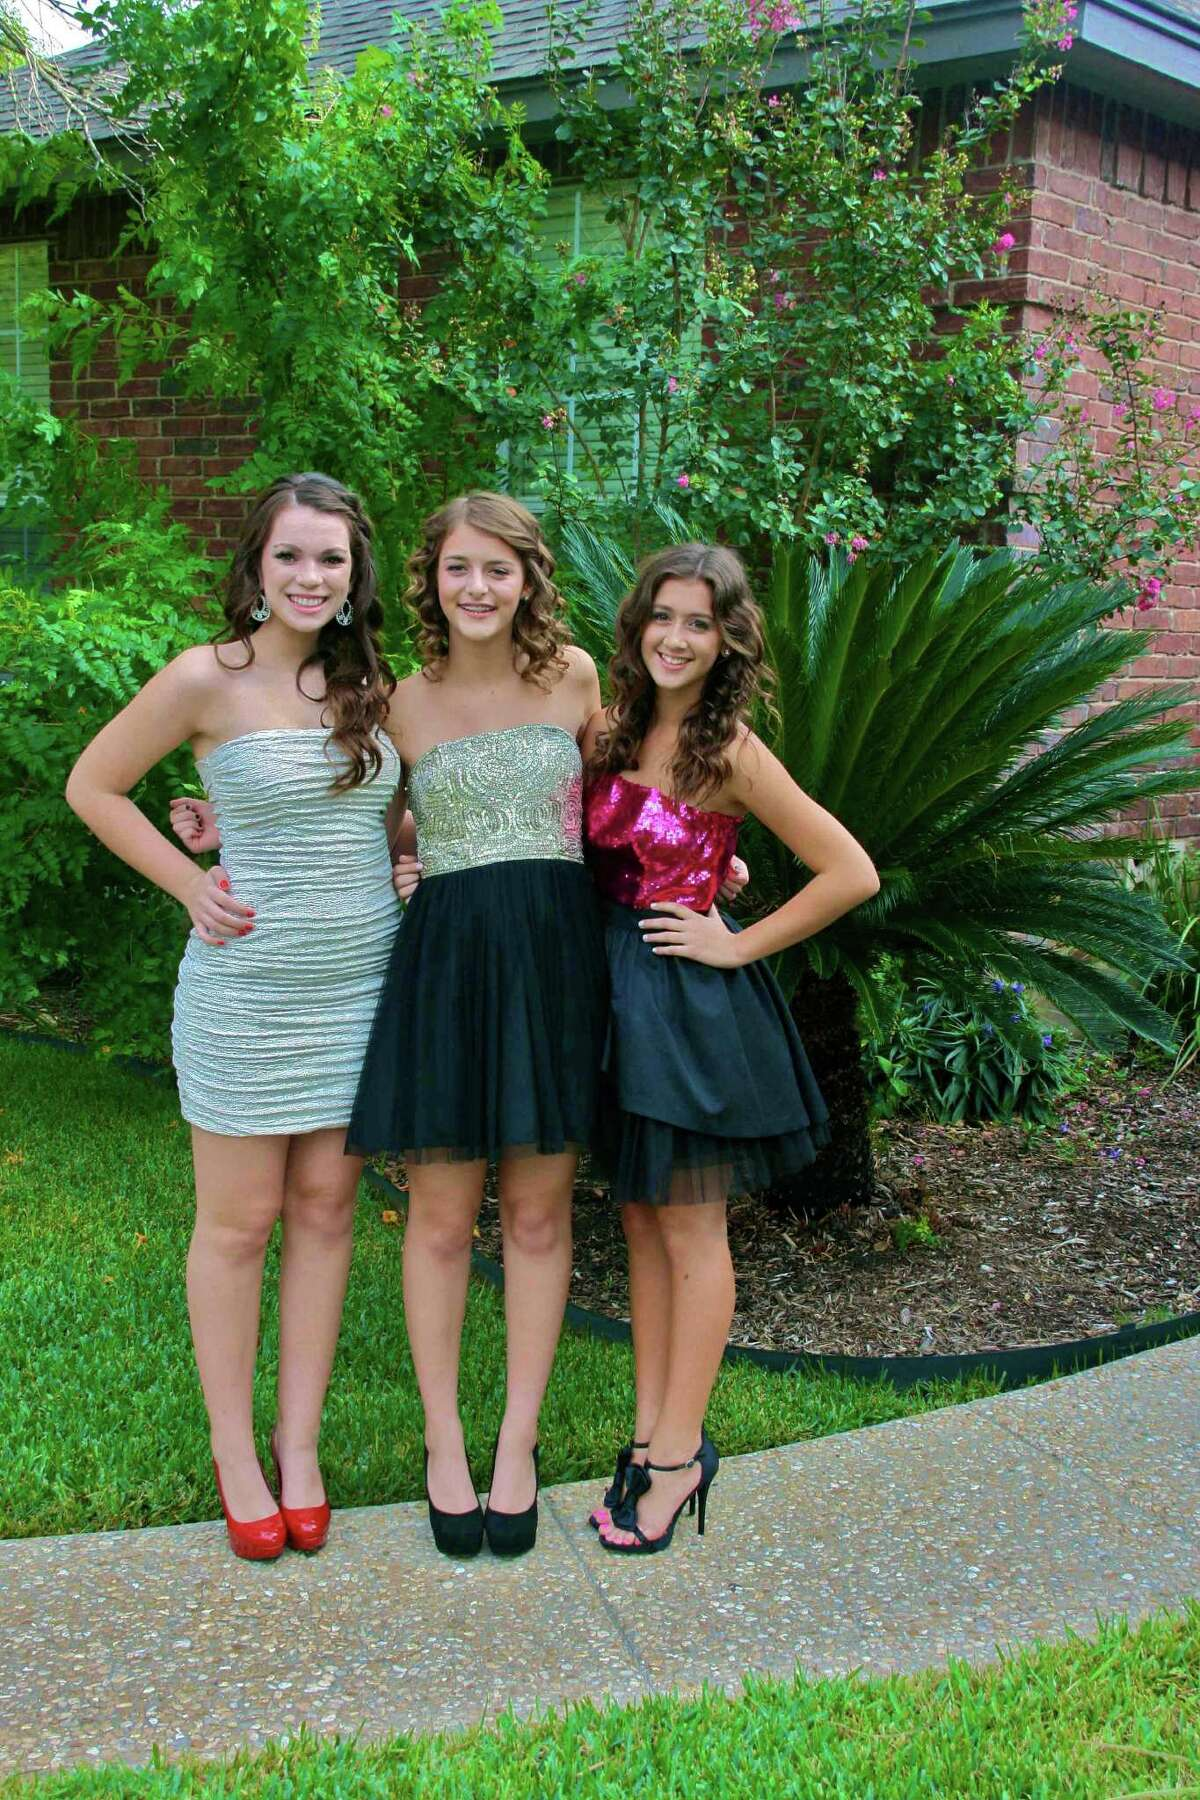 Churchill High School sophomores (from left) Sydney Sanders, Jordan Howard and Kaylee Booth were ready to enjoy the campus homecoming dance Sept. 29 at Blossom Athletic Center when an anonymous bomb threat halted that and a nearby Johnson/MacArthur football game. Churchill community members have raised funds for a replacement dance in November.